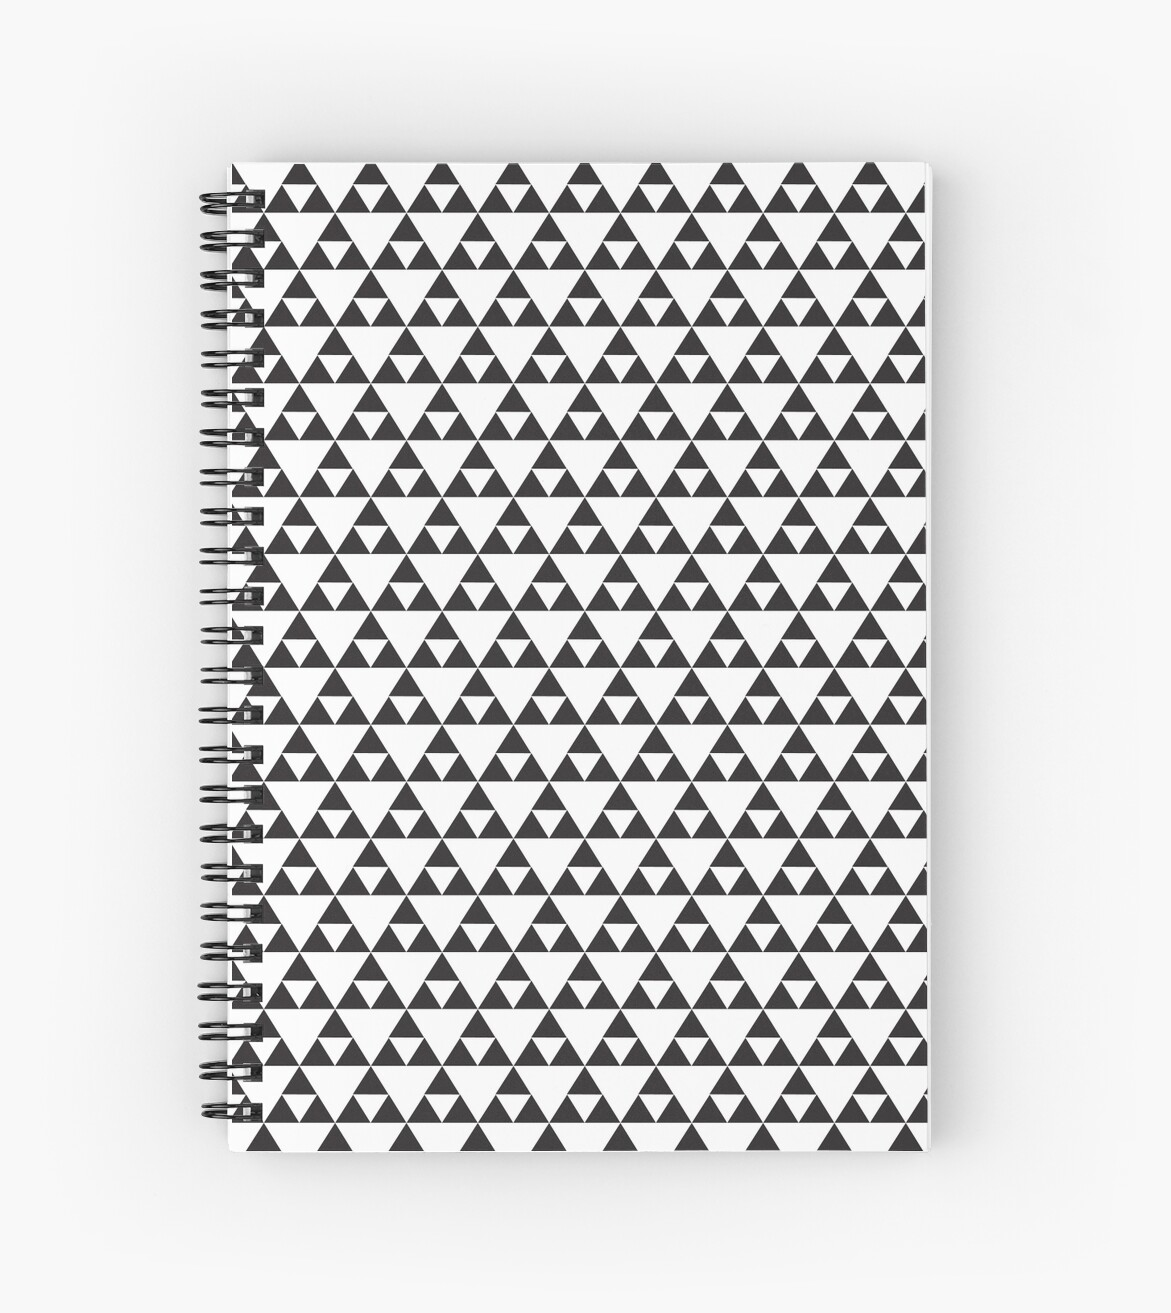 black and white triangle pattern by jennythip